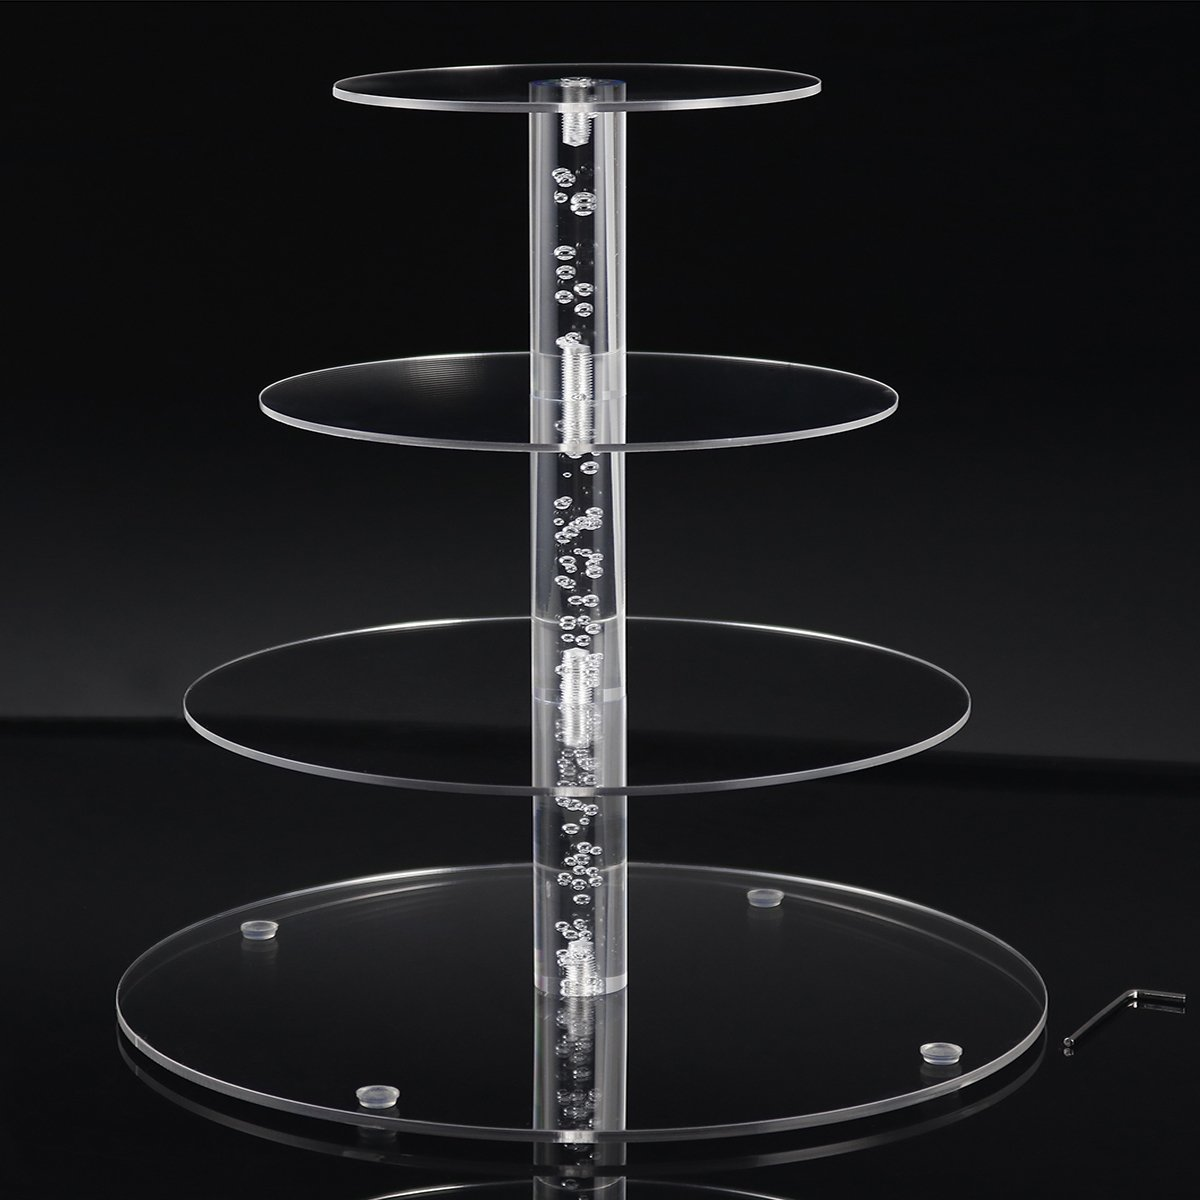 2018 New Style 4 Tiers Cupcake Stands Tower - Clear Acrylic Display Holder Tree - Tiered Cupcake Display- Tiered Round Pastry Stand Dessert Stands Wedding Cake Stands For Parties Birthday - DYCacrlic by DYCacrlic (Image #2)